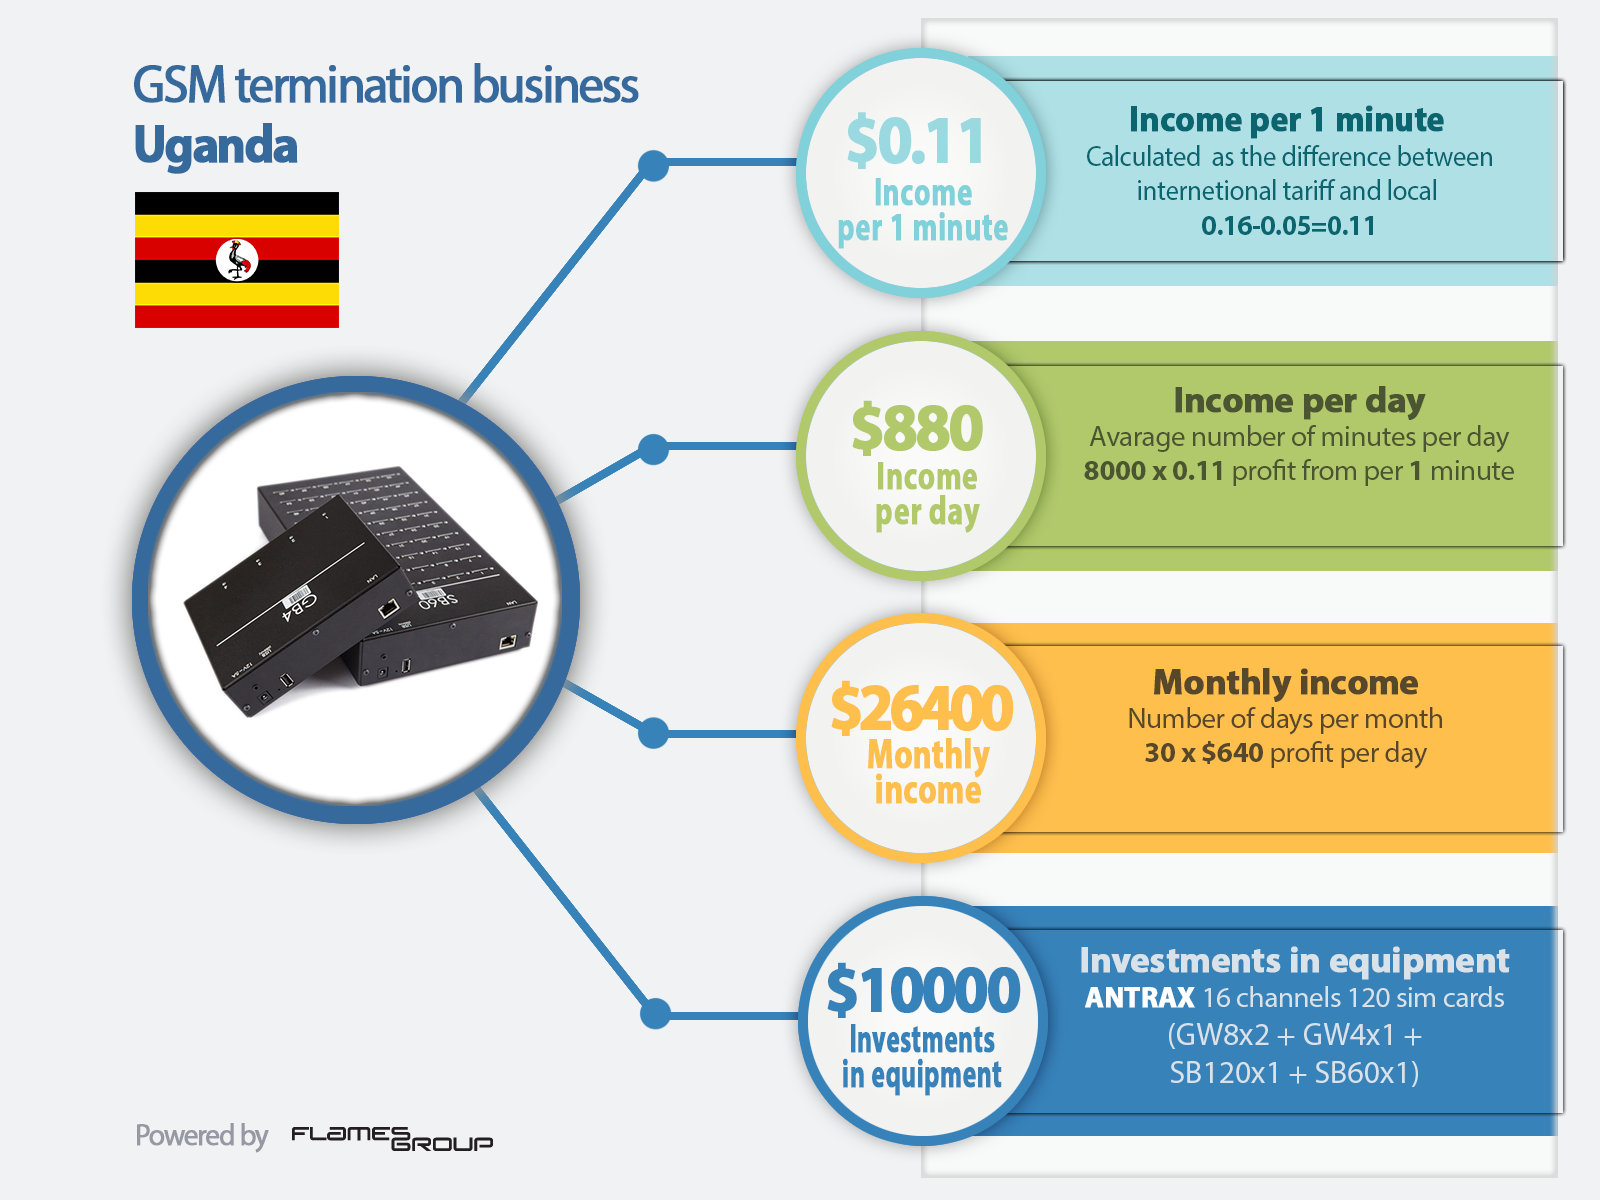 GSM termination in Uganda - Infographic ANTRAX